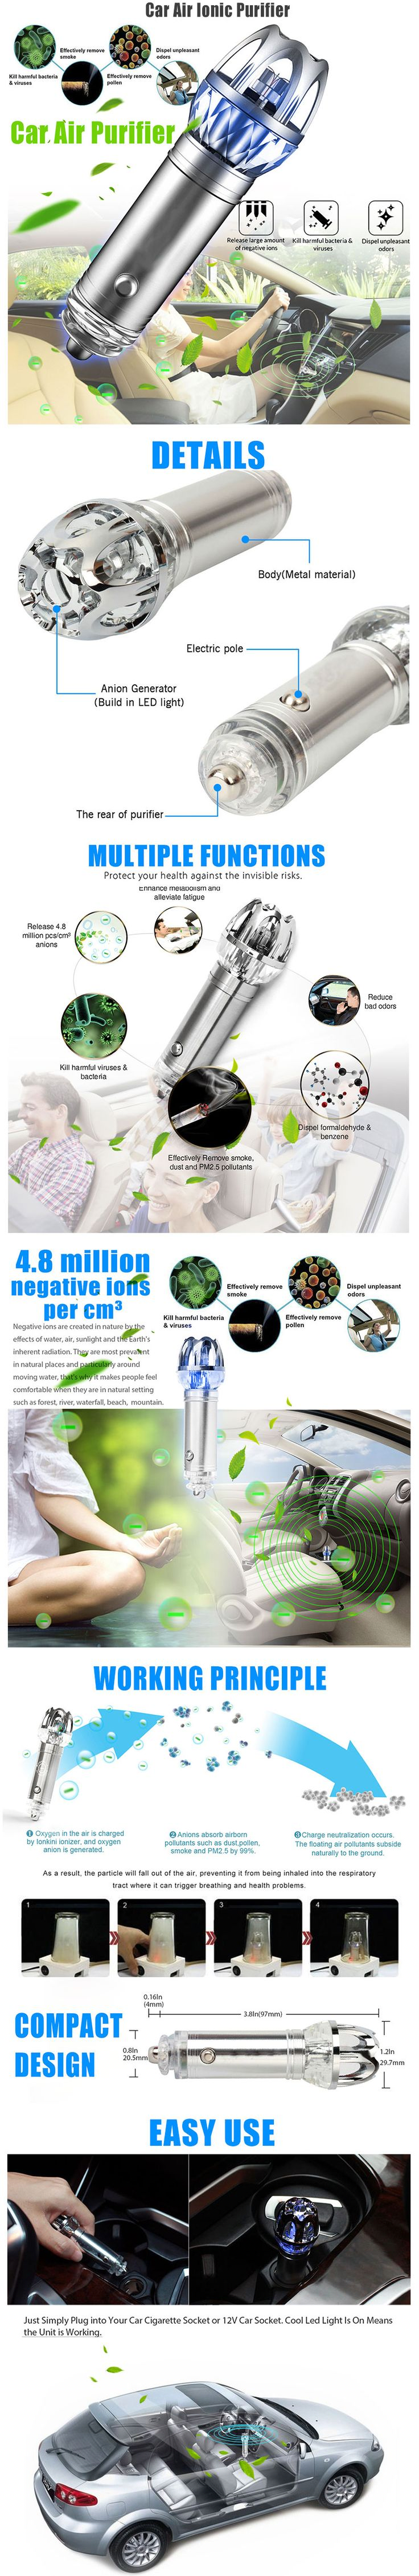 ideias sobre causes of air pollution no mudan atilde sect as 2017 new mini car air ionic purifier innovative ionizer cleaner odor remover